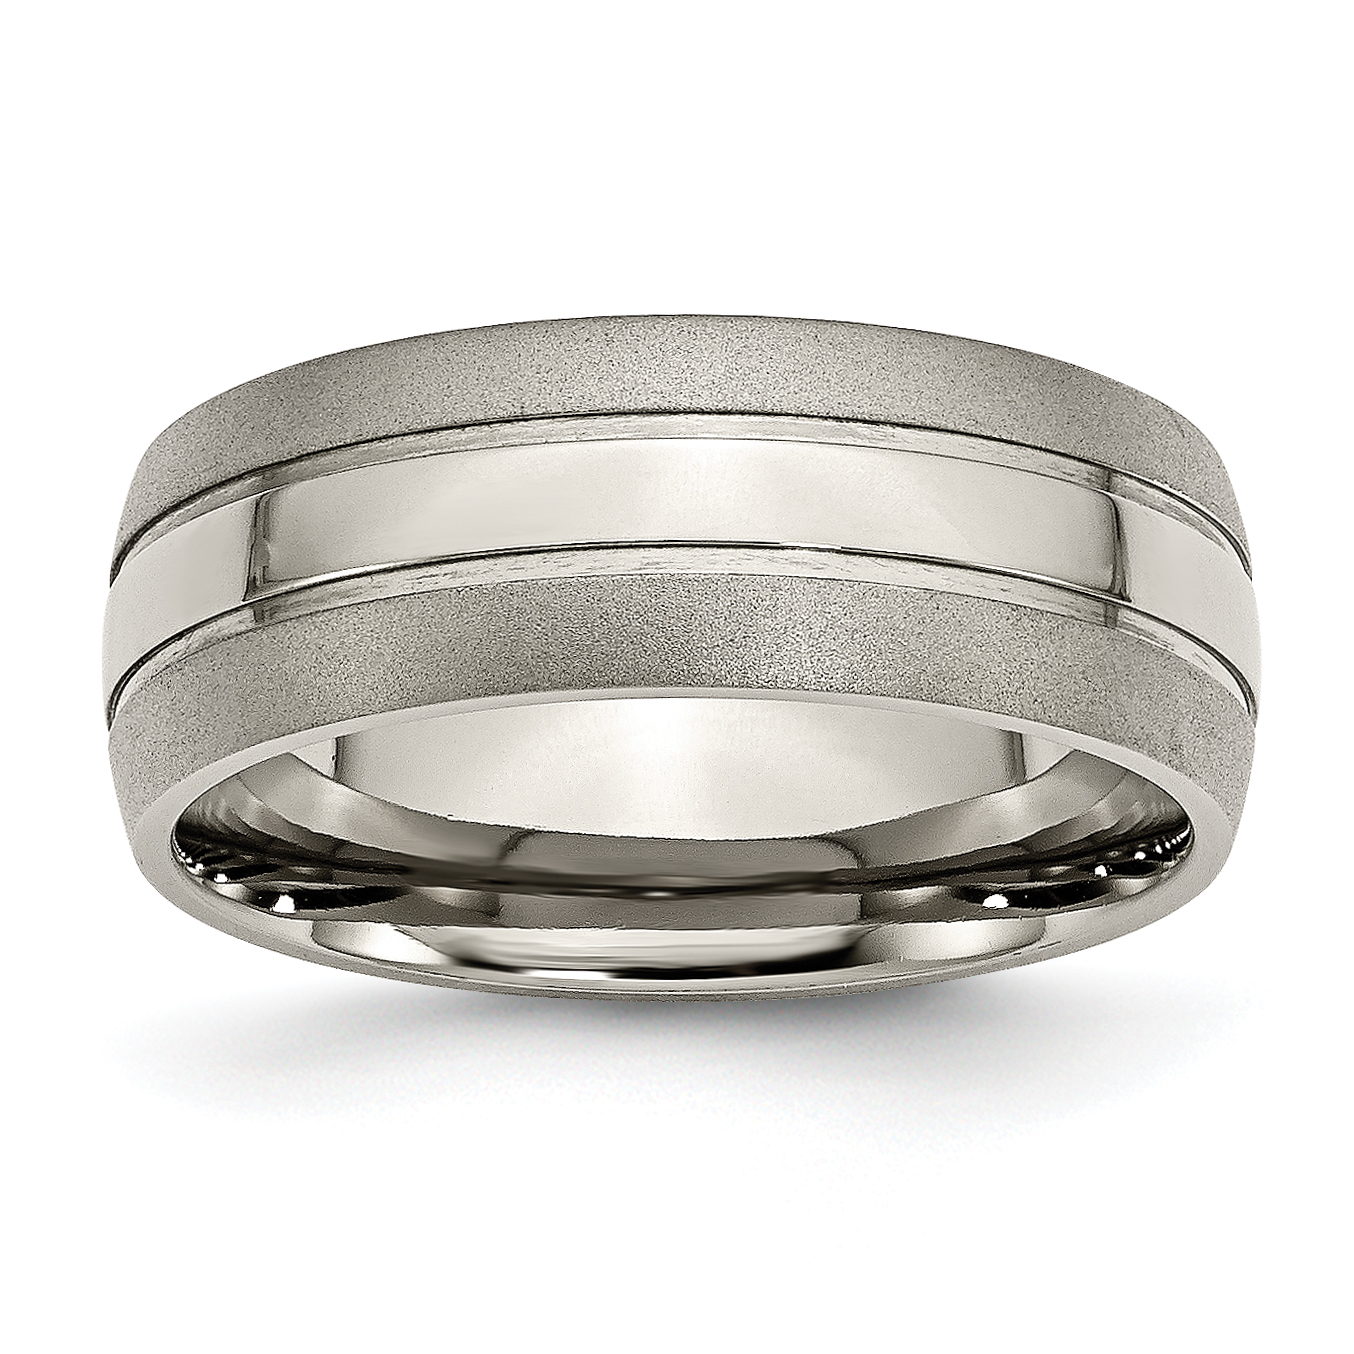 Titanium Notched 8mm Satin Wedding Band Fine Jewelry Ideal Gifts For Women